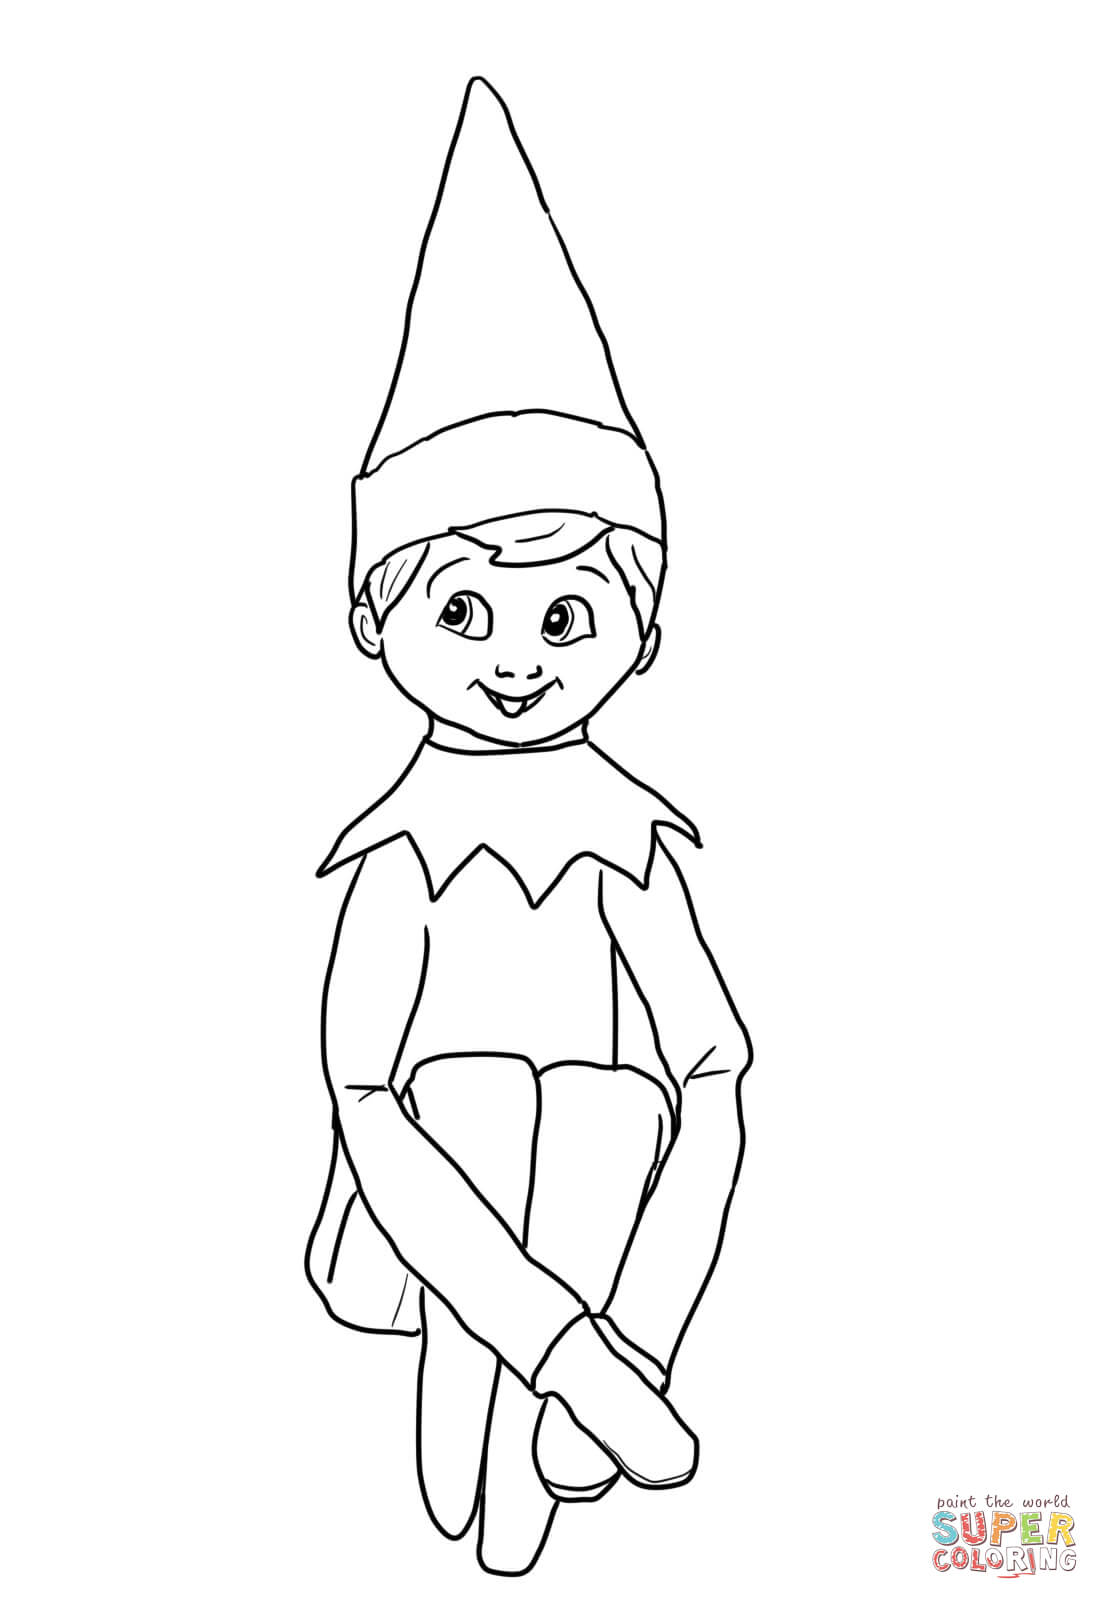 elf-on-the-shelf-coloring-page-0020-q1